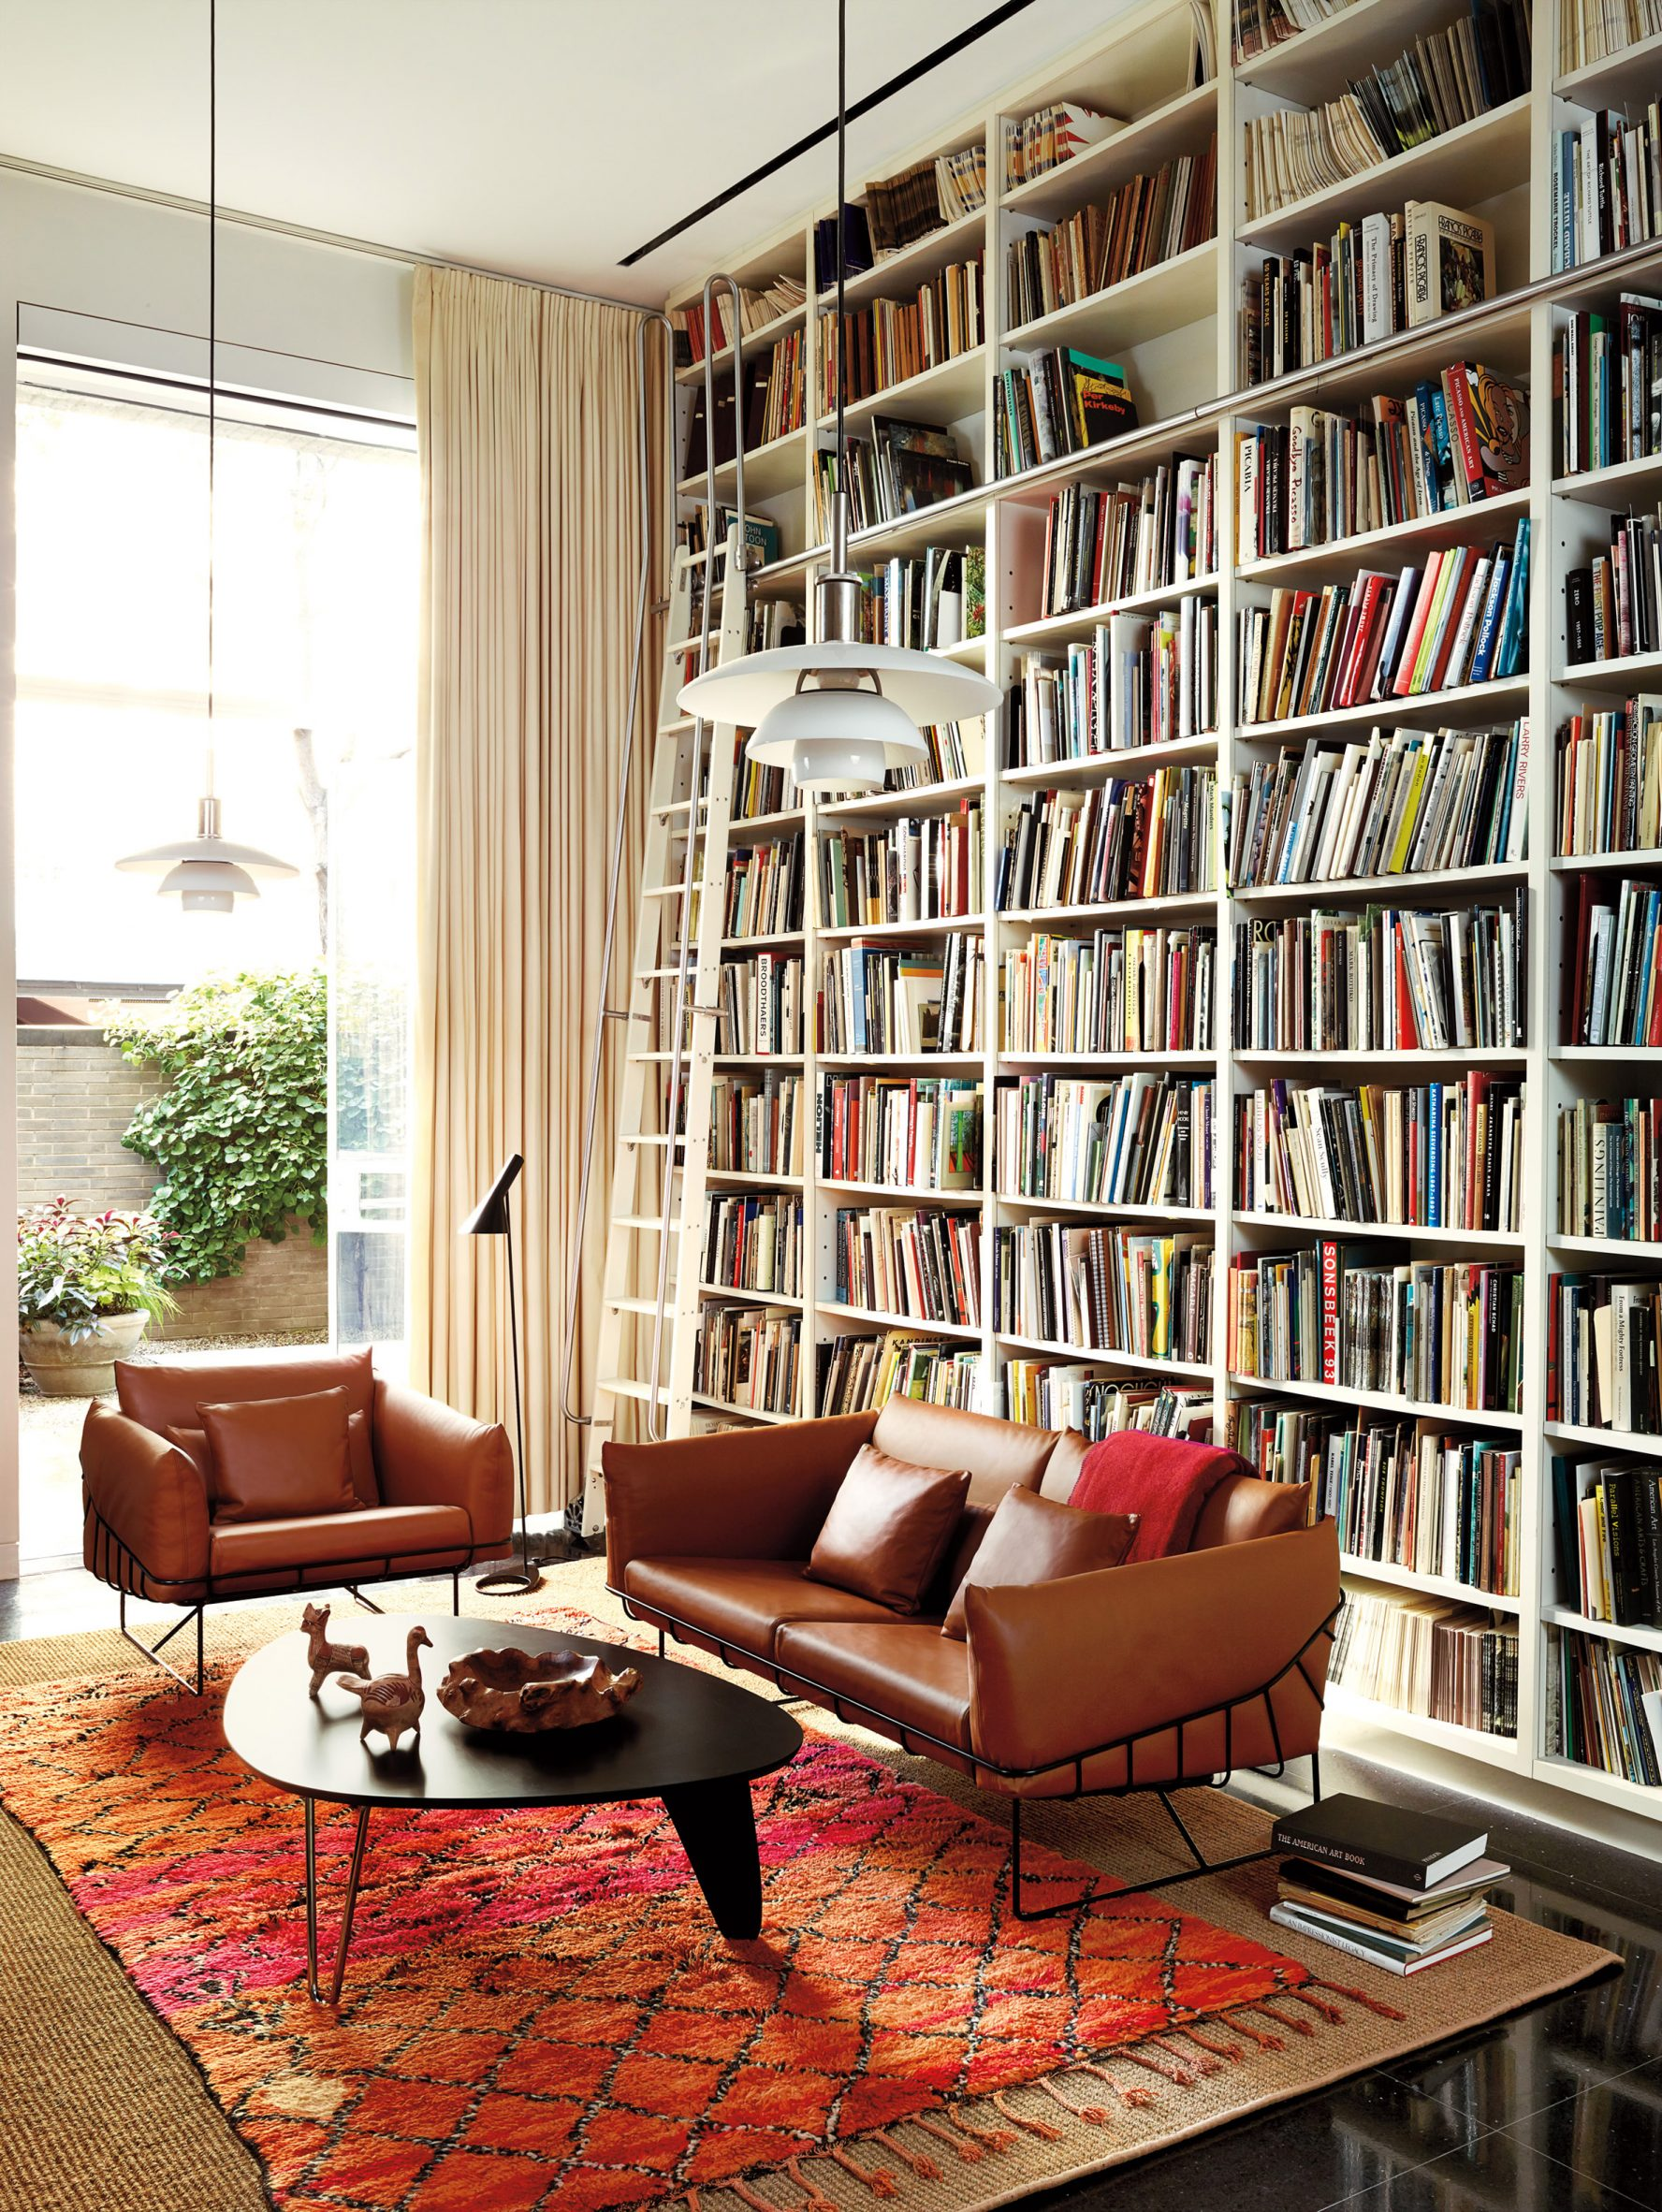 Brown leather sofas with a black wire frame next to a coffee table with an egg shaped top in a book-lined living room